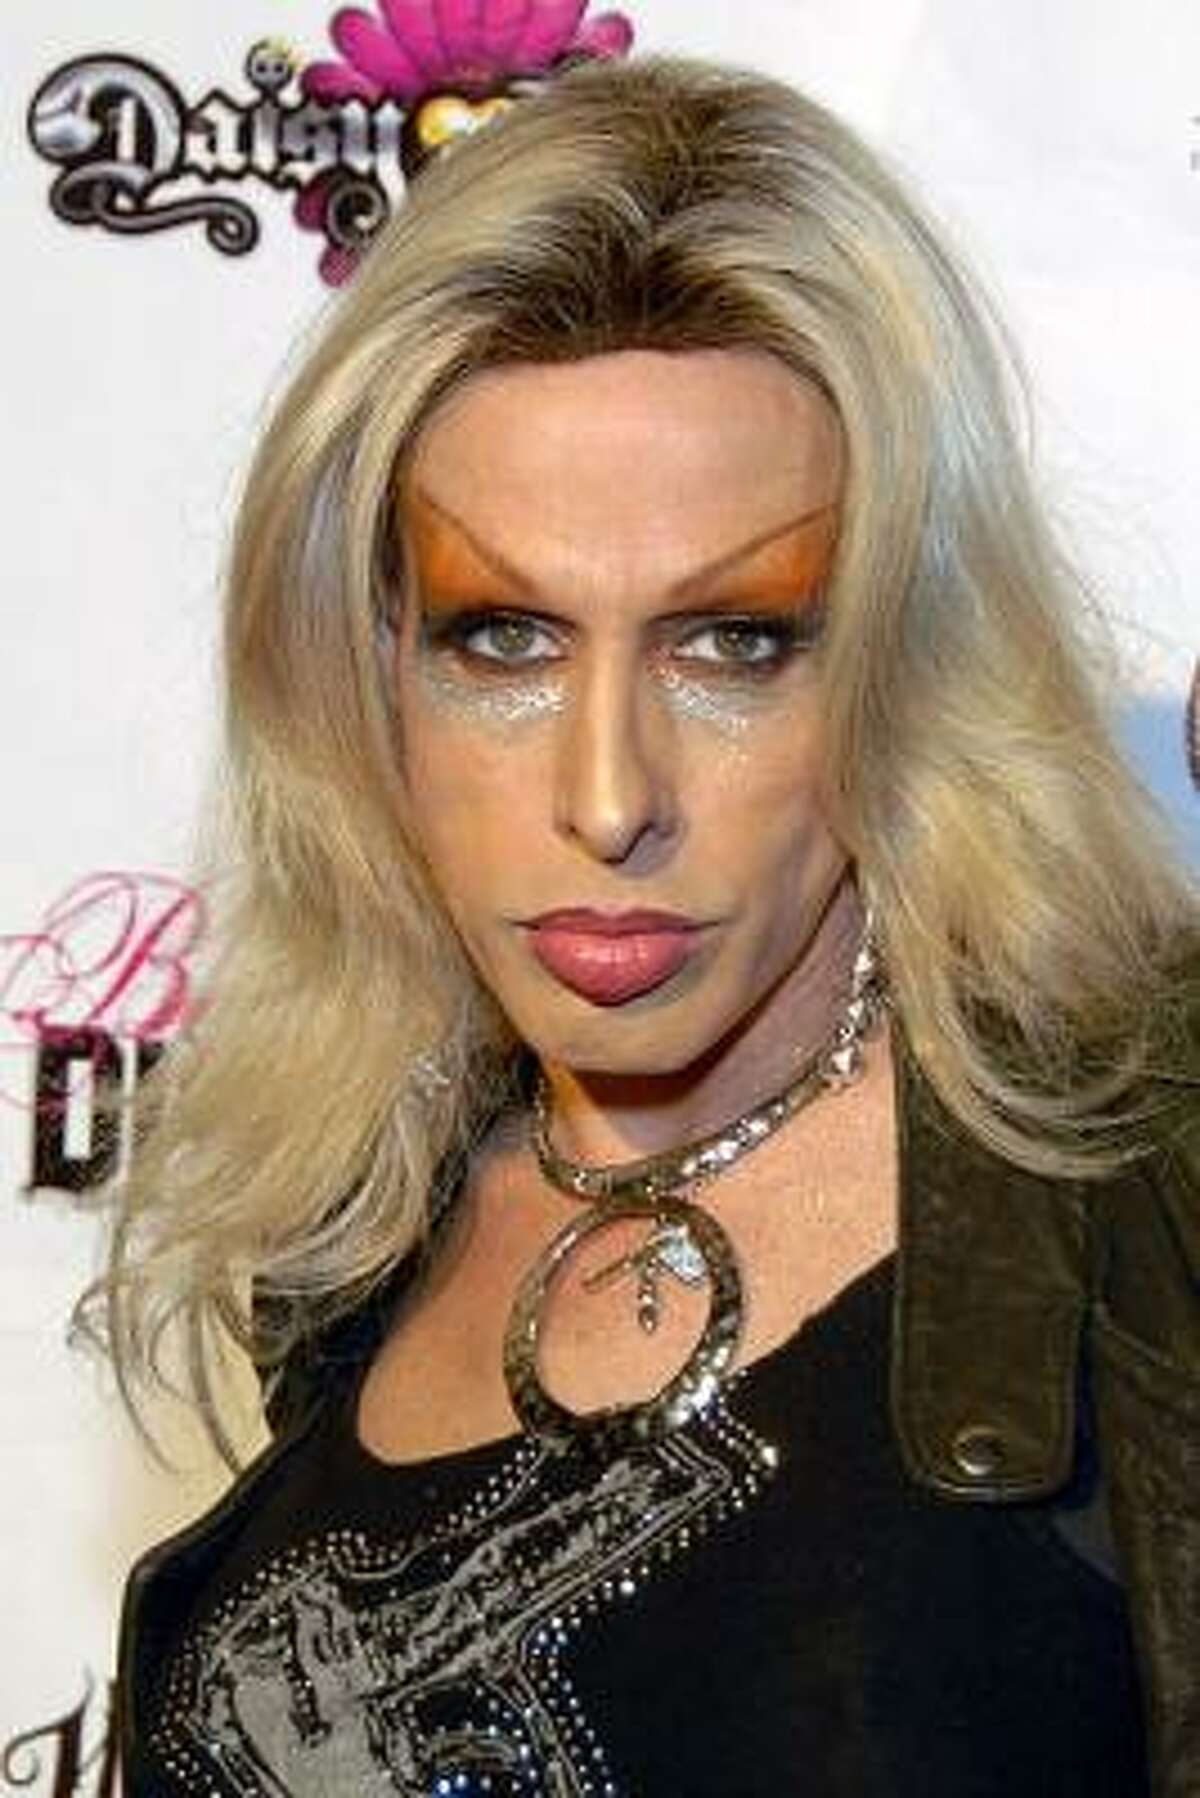 Alexis Arquette , a real-life trans woman and sister of David and Rosanna Arquette, has starred as herself in numerous documentaries. Her transition from male to female was documented in the film, Alexis Arquette: She's My Brother.